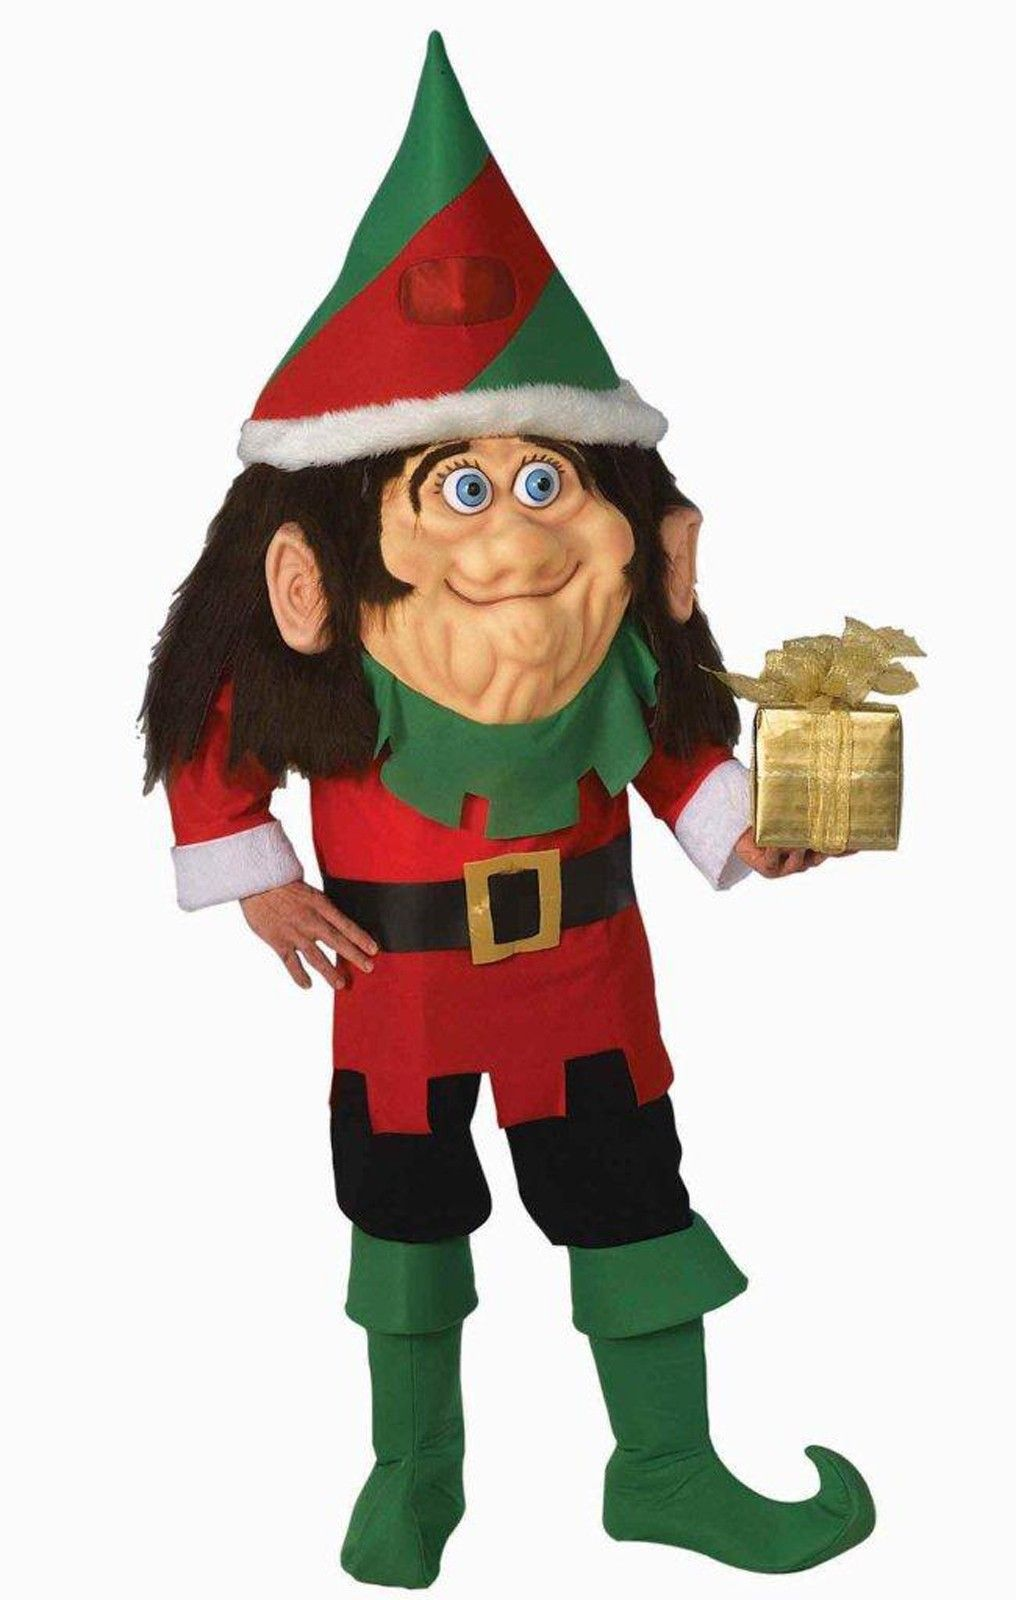 d7eee5ef8b34 Parade Pleaser - Santa s Elf Adult Costume -Includes  Oversized hat with  see-through eye mesh (in the middle of the hat)